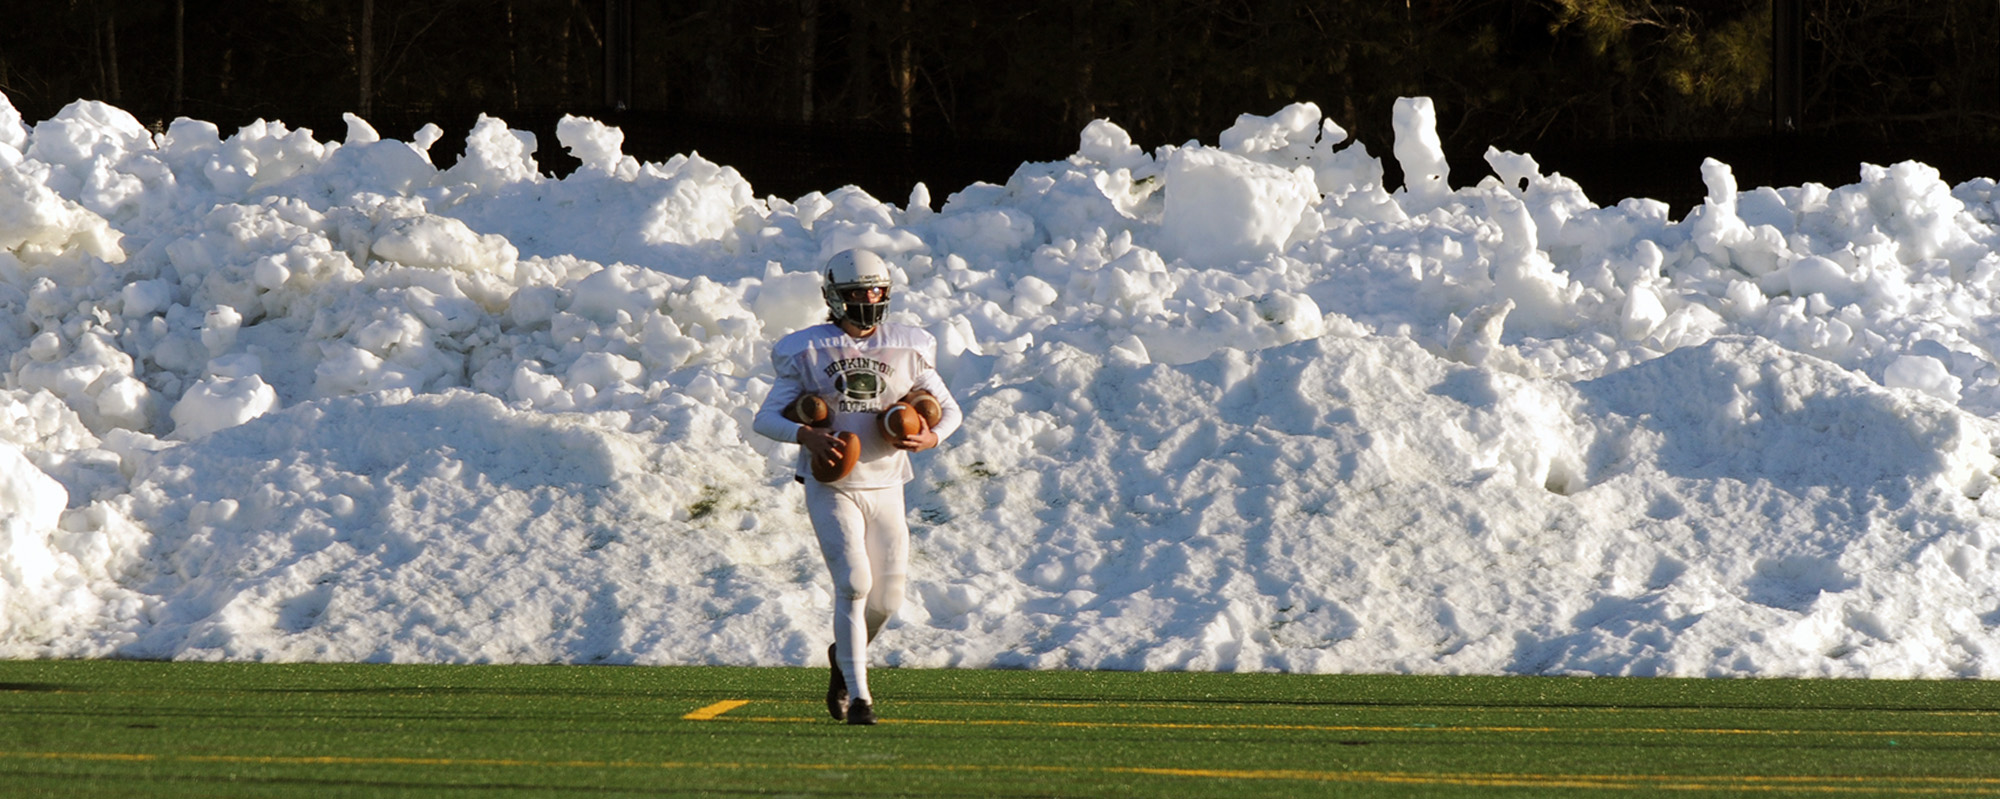 Hopkinton High School sophomore Avery Ravech, the punter and placekicker on the football team, collects balls at practice on the lower turf field, March 8, 2021.